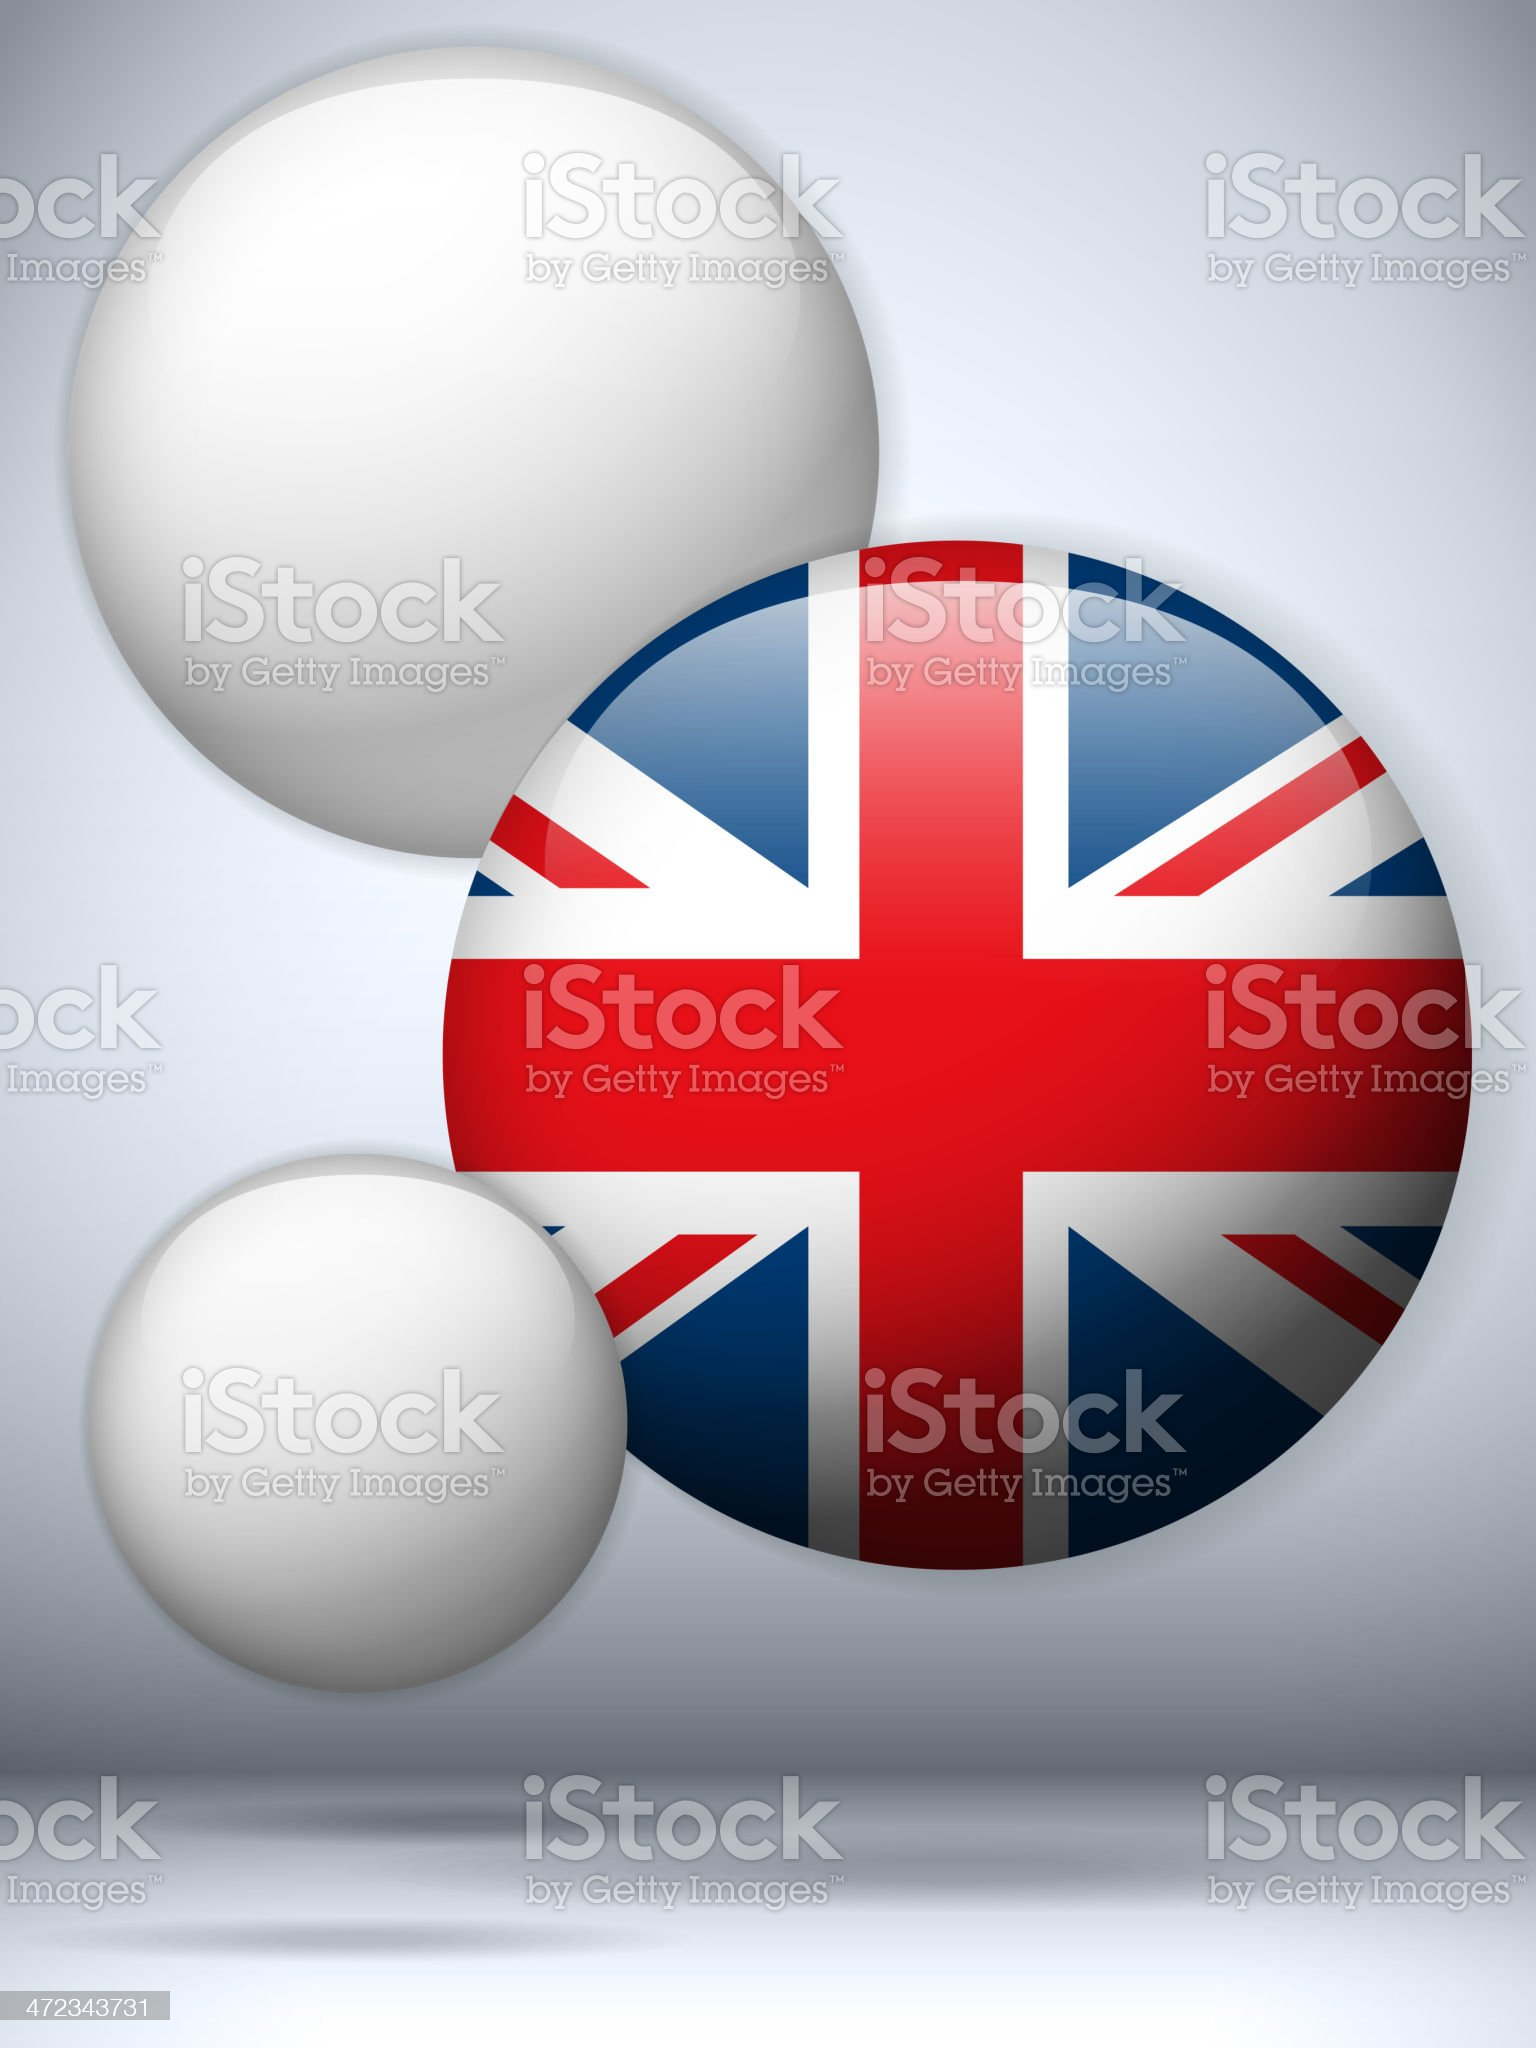 United Kingdom Country Set of Bubbles royalty-free stock vector art